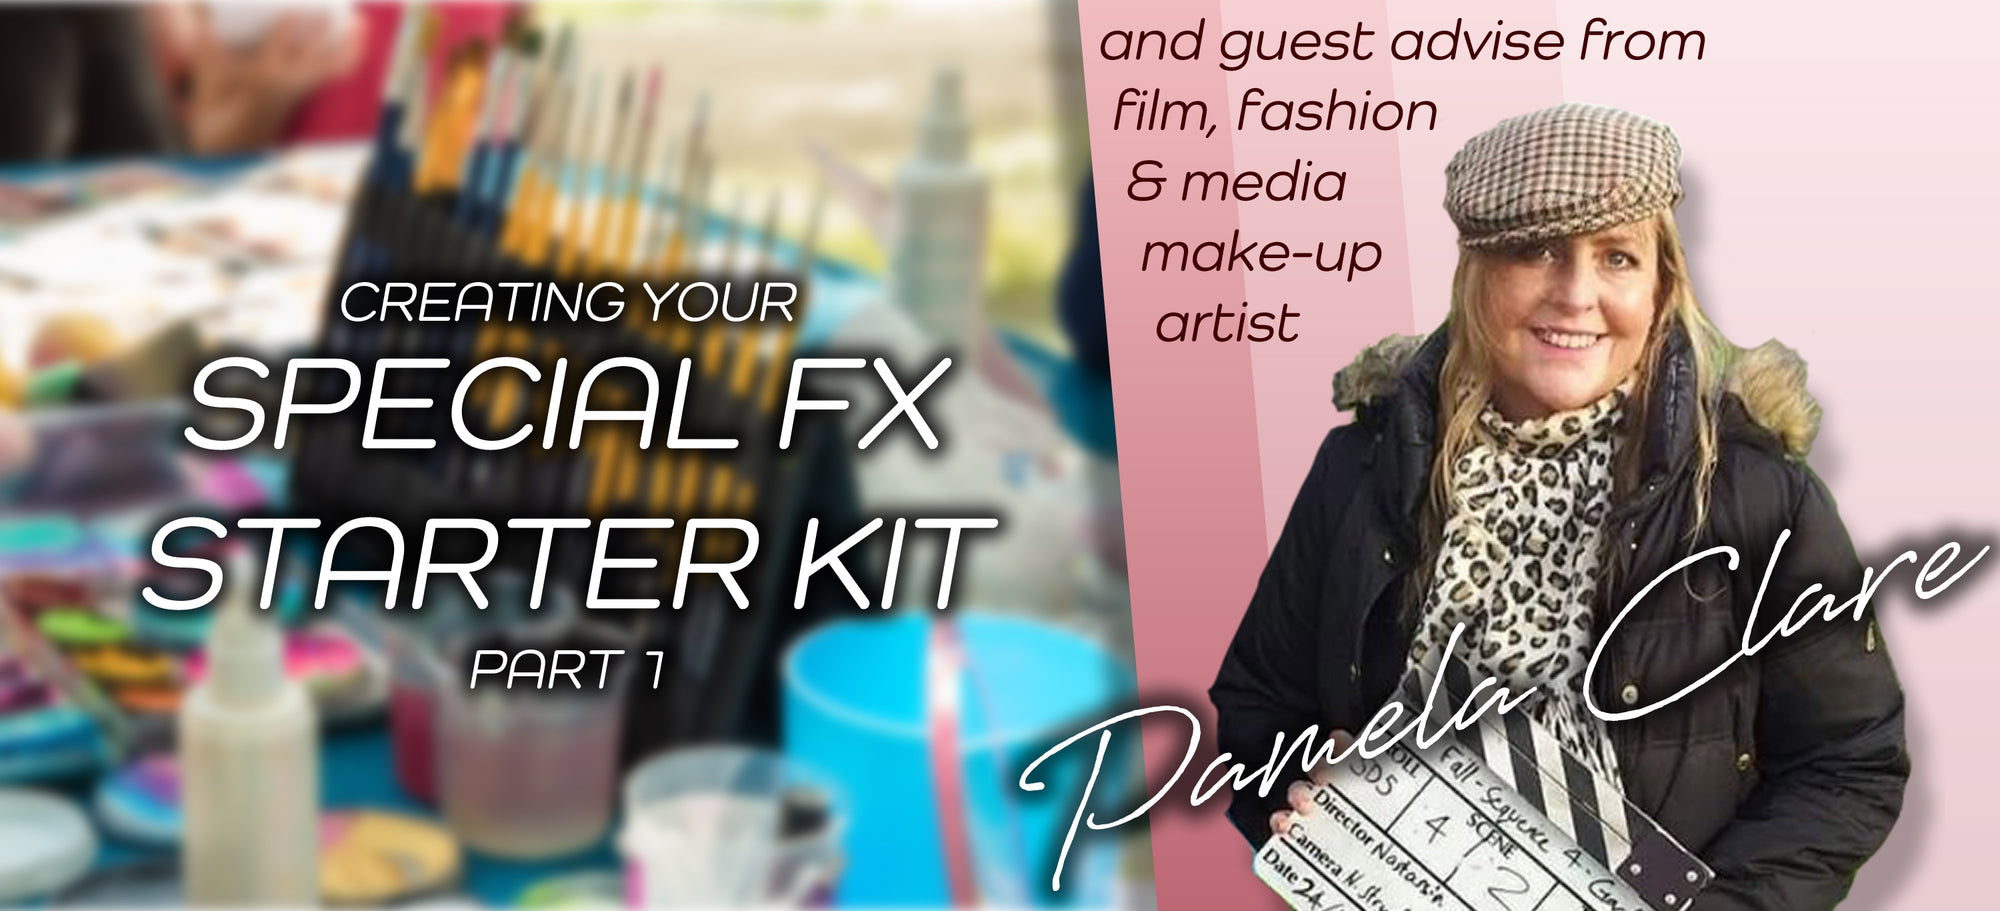 Essentials For Your SFX Make Up Starter Kit - Part 1